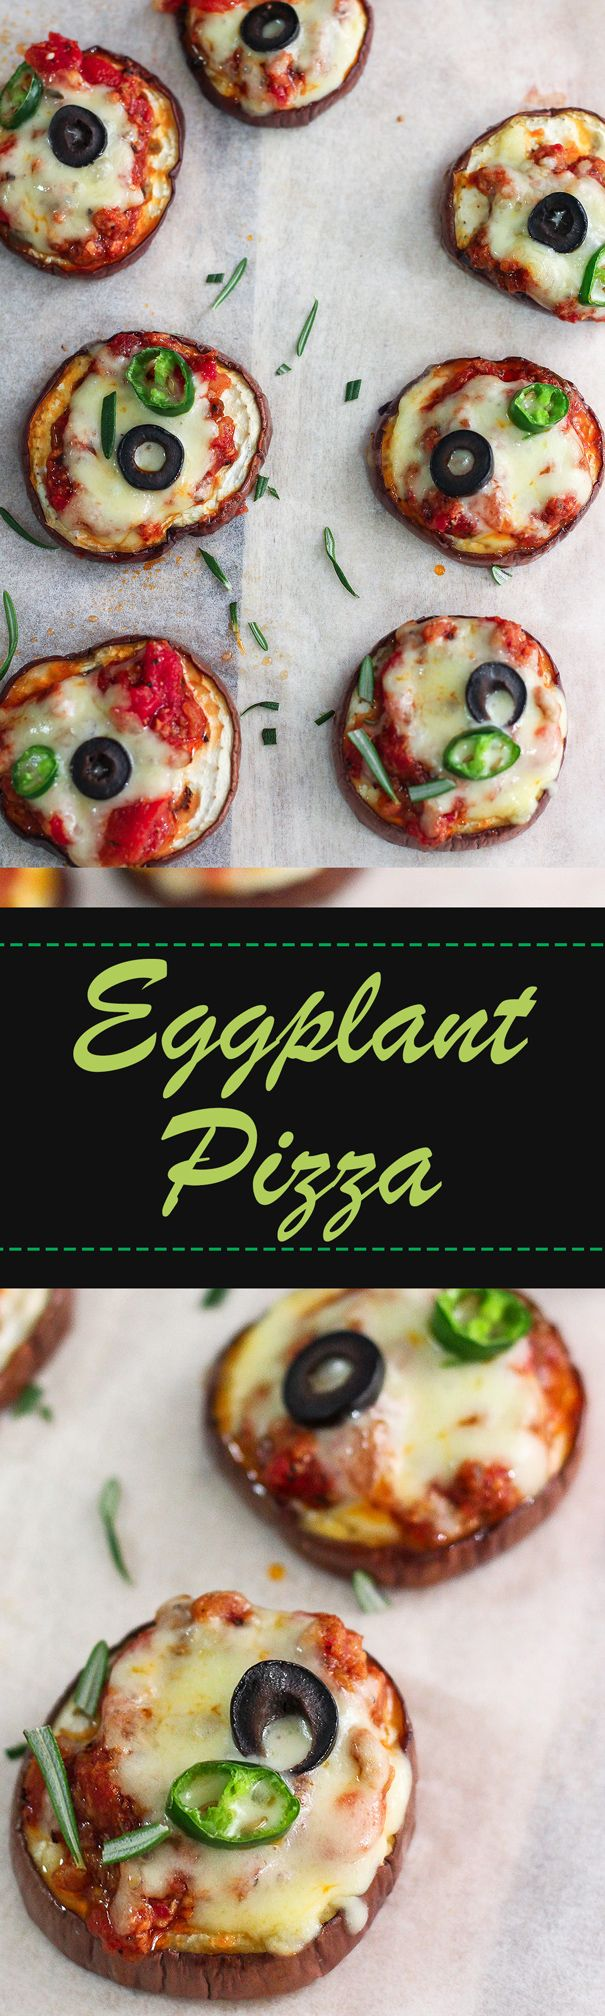 This Eggplant Pizza Recipe is a keeper and I am going to make this again very soon. I seriously loved this more than the regular pizzas!!